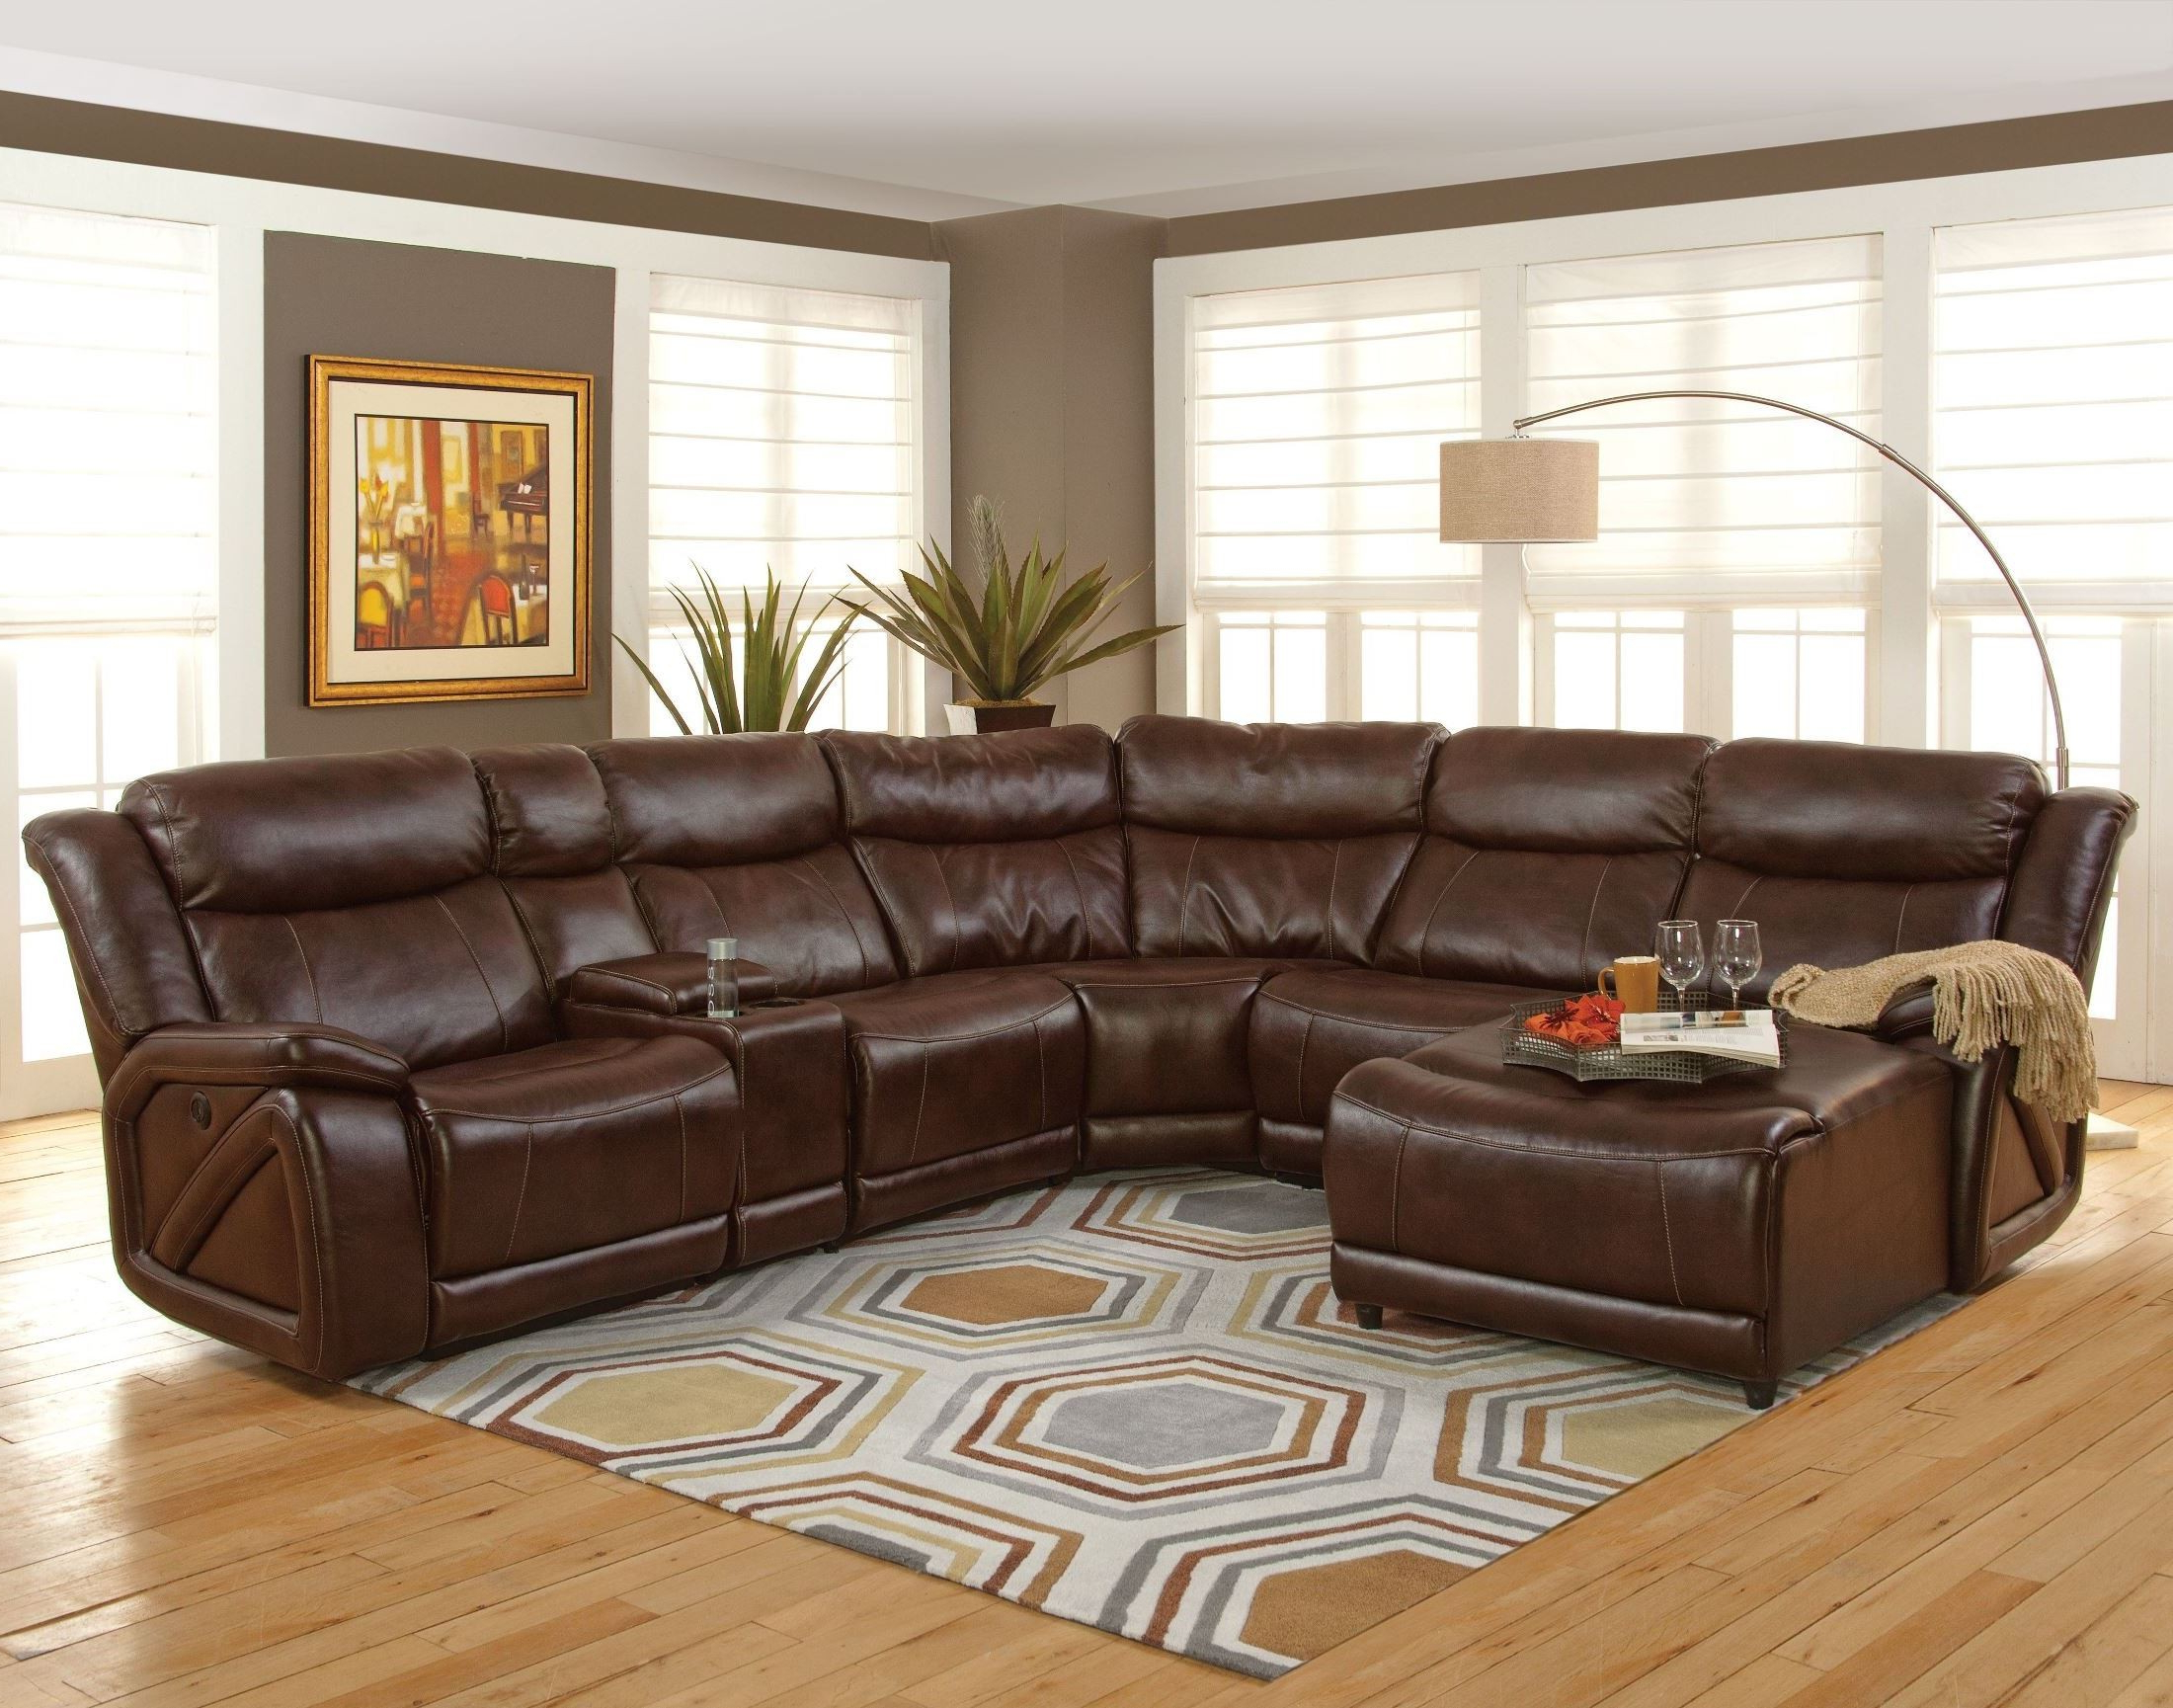 Turdur 3 Piece Sectionals With Raf Loveseat Inside Fashionable Park Place Premier Brown Laf Sectional From New Classics (20 225 17L (Gallery 6 of 20)